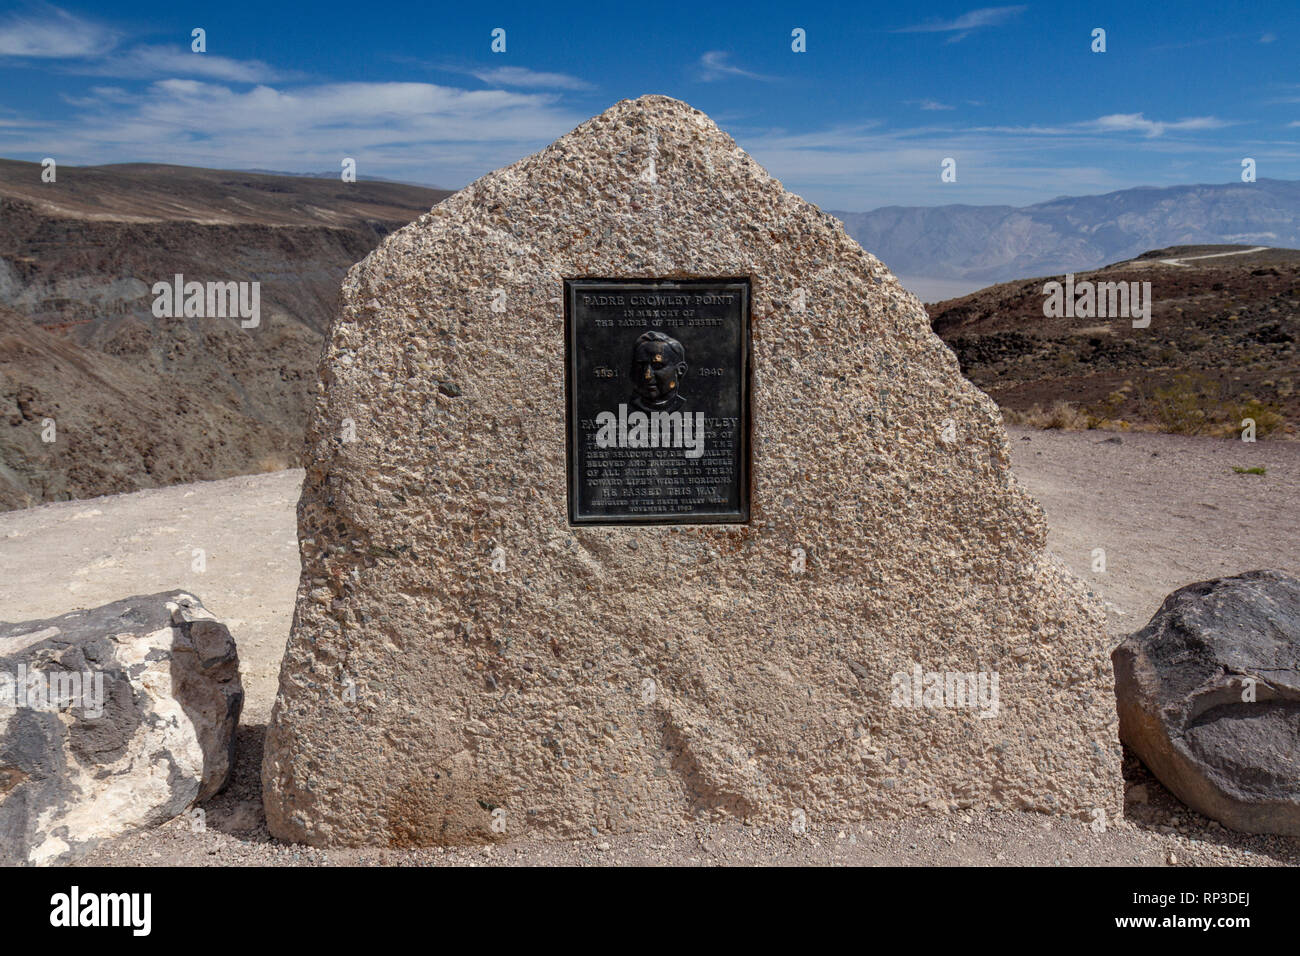 Father Crowley Overlook marker Rainbow Canyon (the 'Star Wars Canyon') towards Death Valley, Death Valley National Park, CA, USA - Stock Image